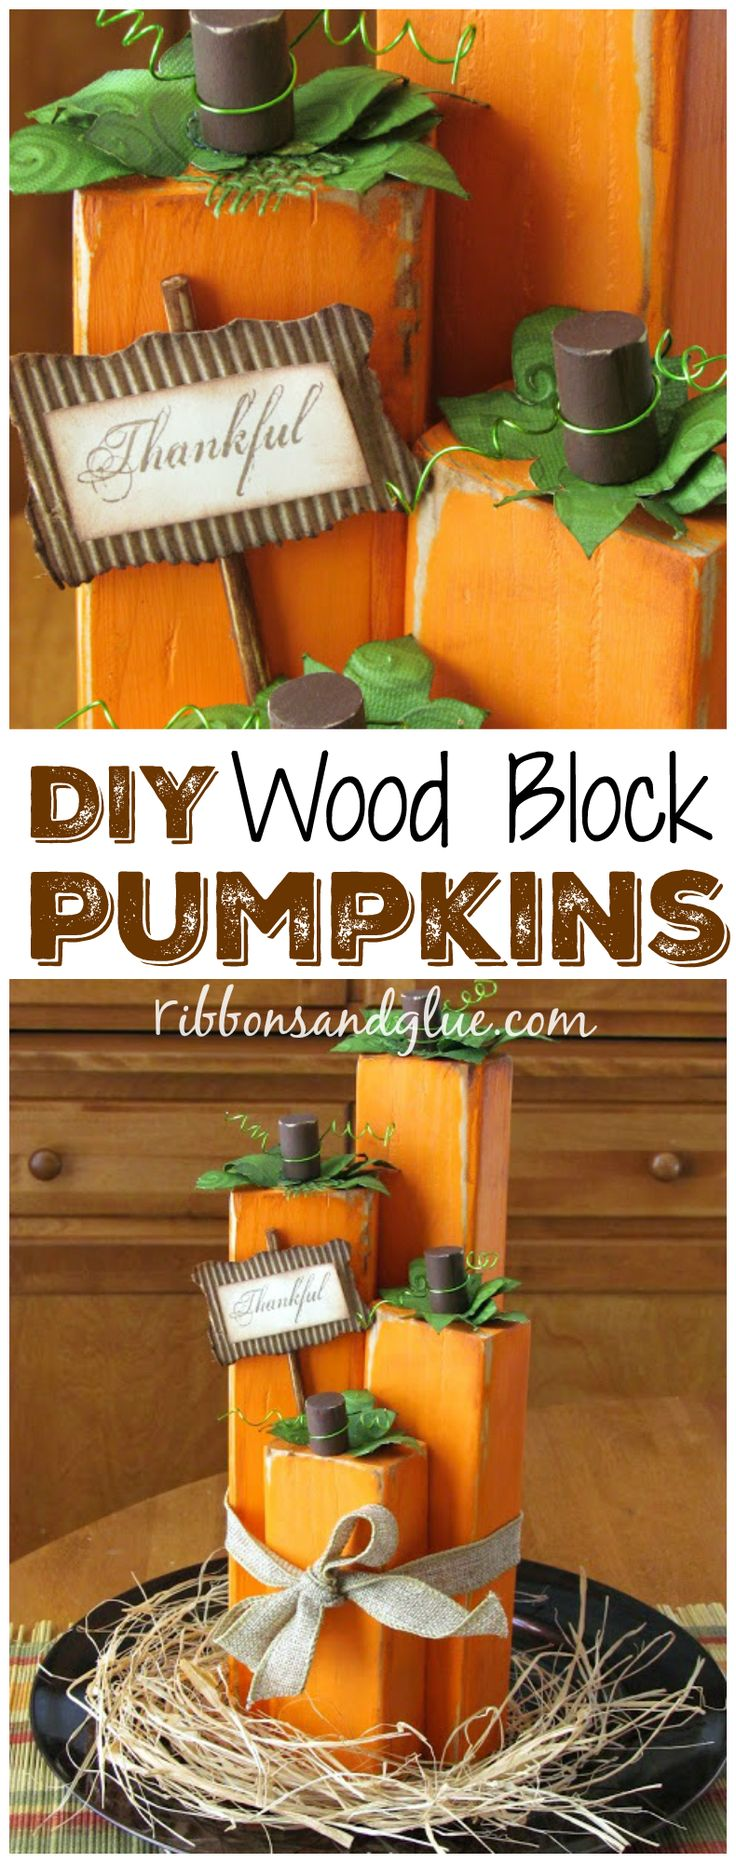 DIY Wood Block Pumpkins. Create this simple Fall centerpiece idea by making Wood Pumpkins out of various sizes of painted wood blocks.